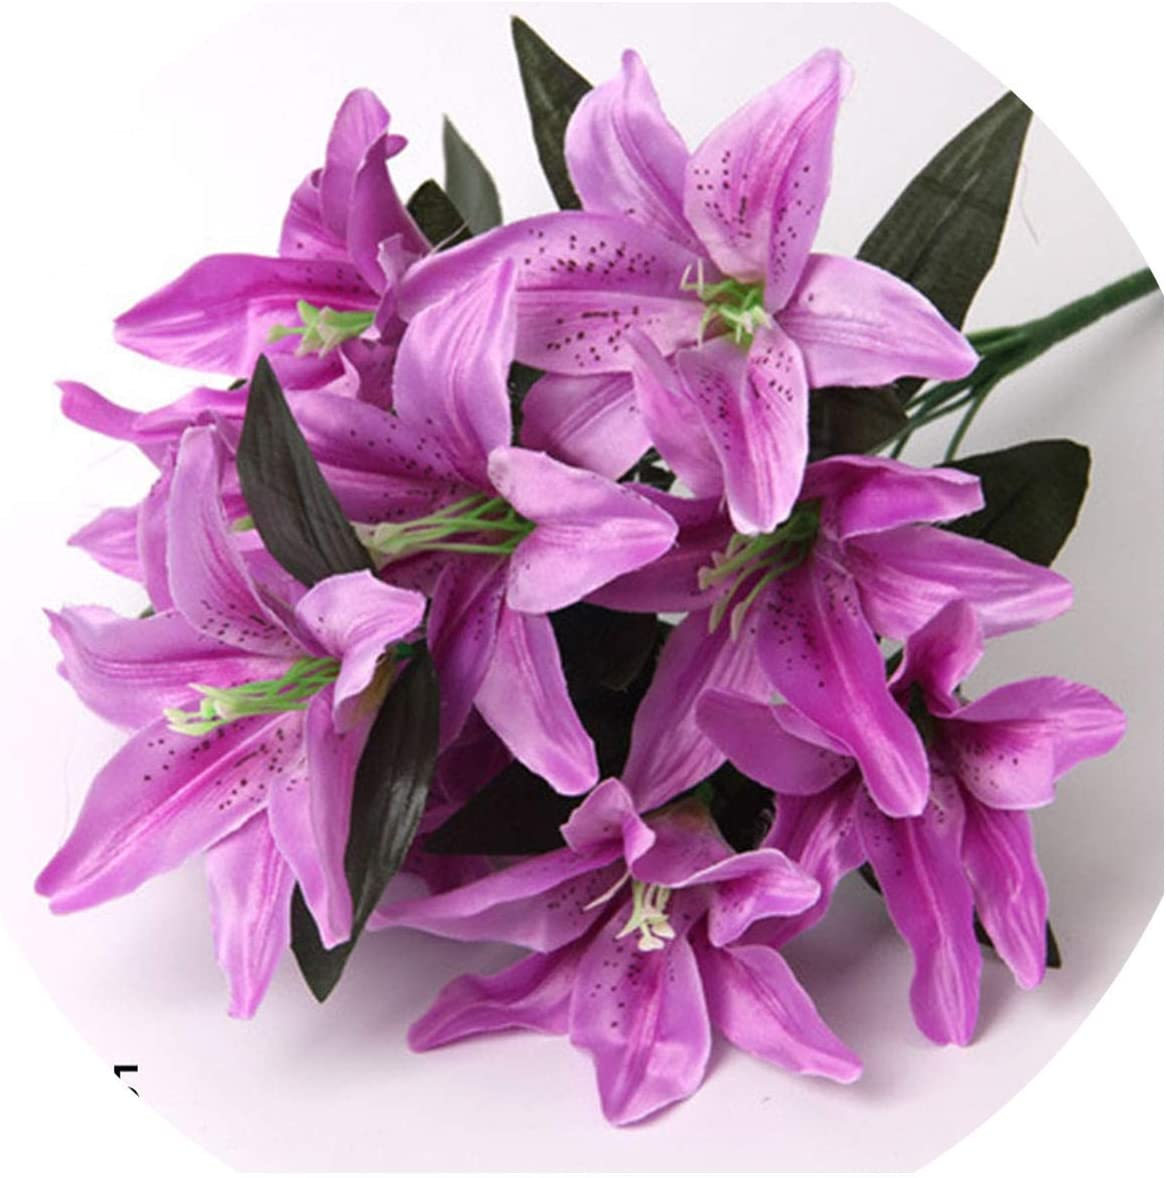 Amazon Com Fortune God Artificial Lily Flower Real Touch Leaves Wedding Decoration Fake Flowers Bouquet Office Party Home Decor L05 Kitchen Dining